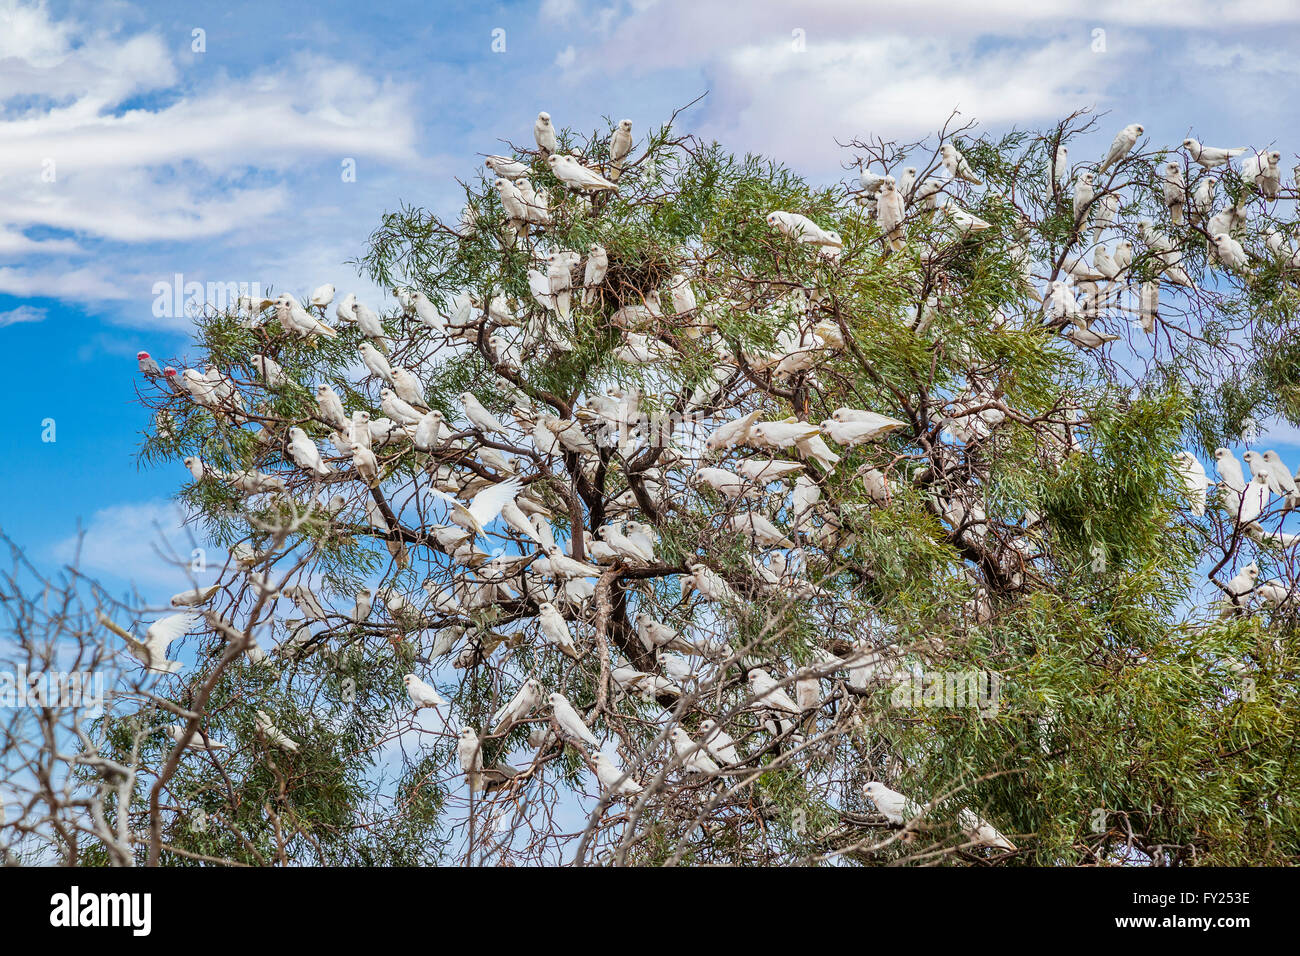 large flock of Corellas (Licmetis) populate a tree at the Halligan Bay Track, Lake Eyre, South Australia - Stock Image